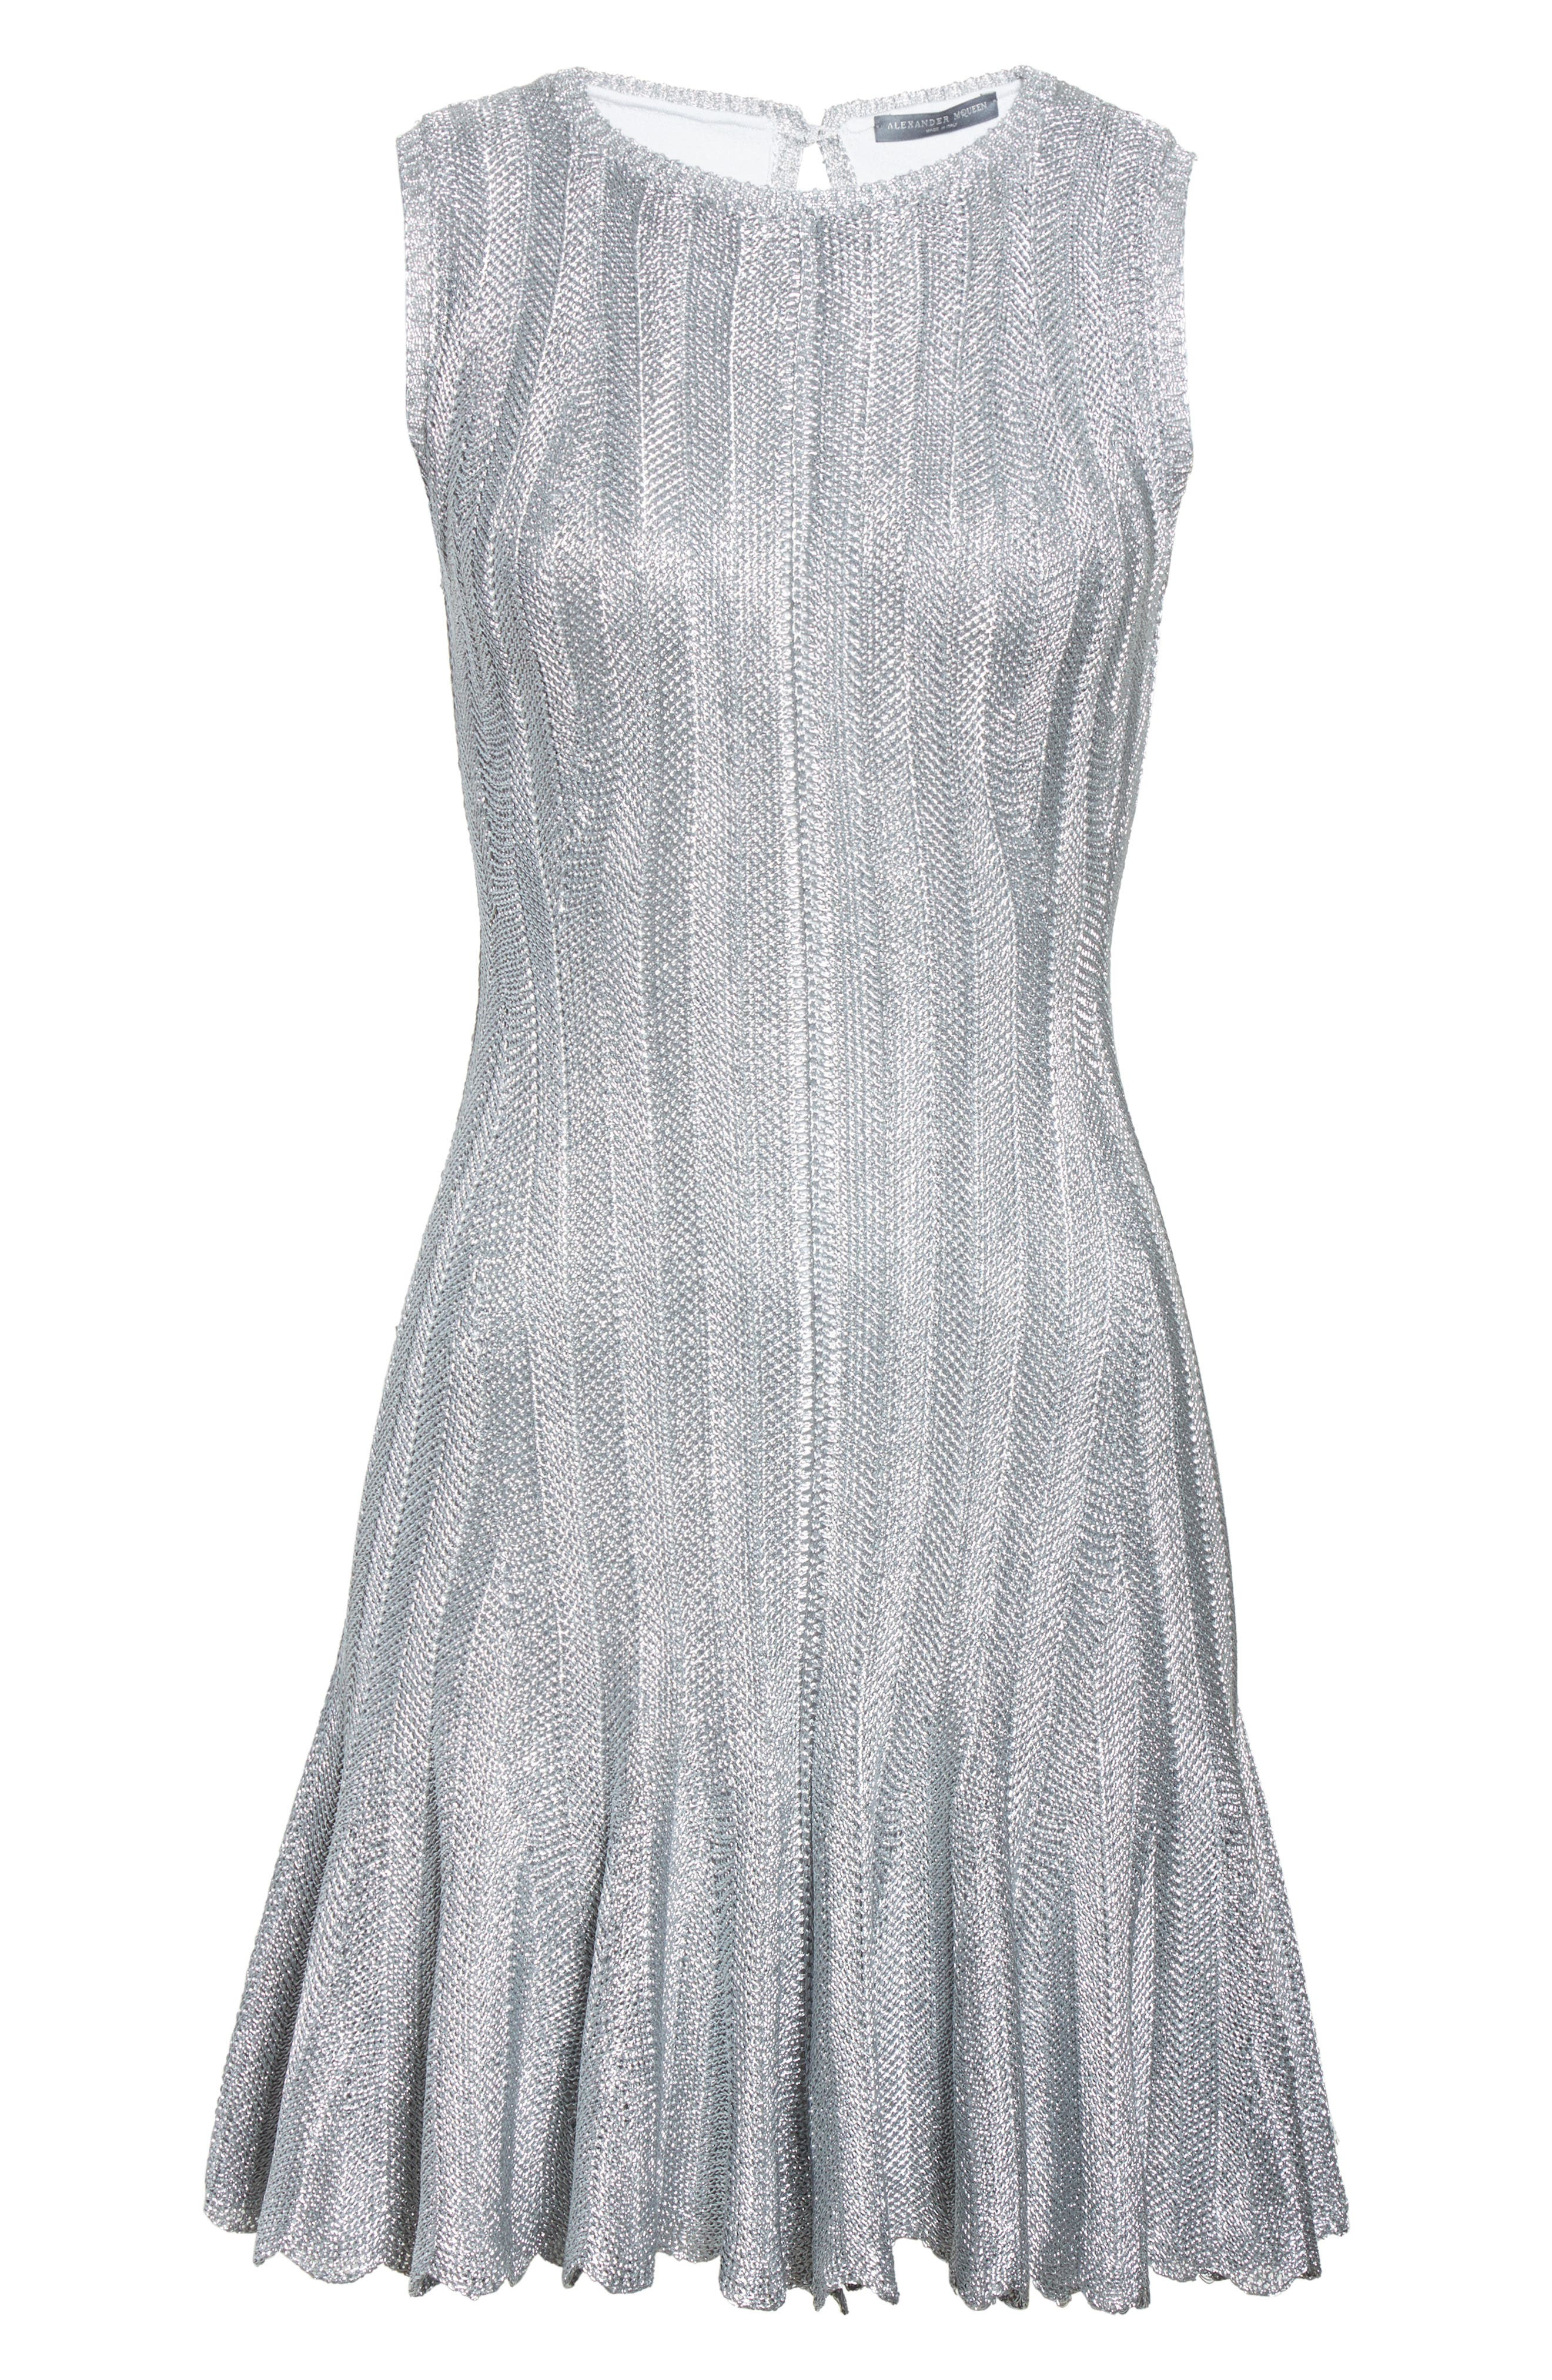 Metallic Knit Fit & Flare Dress,                             Alternate thumbnail 4, color,                             Silver Metallic